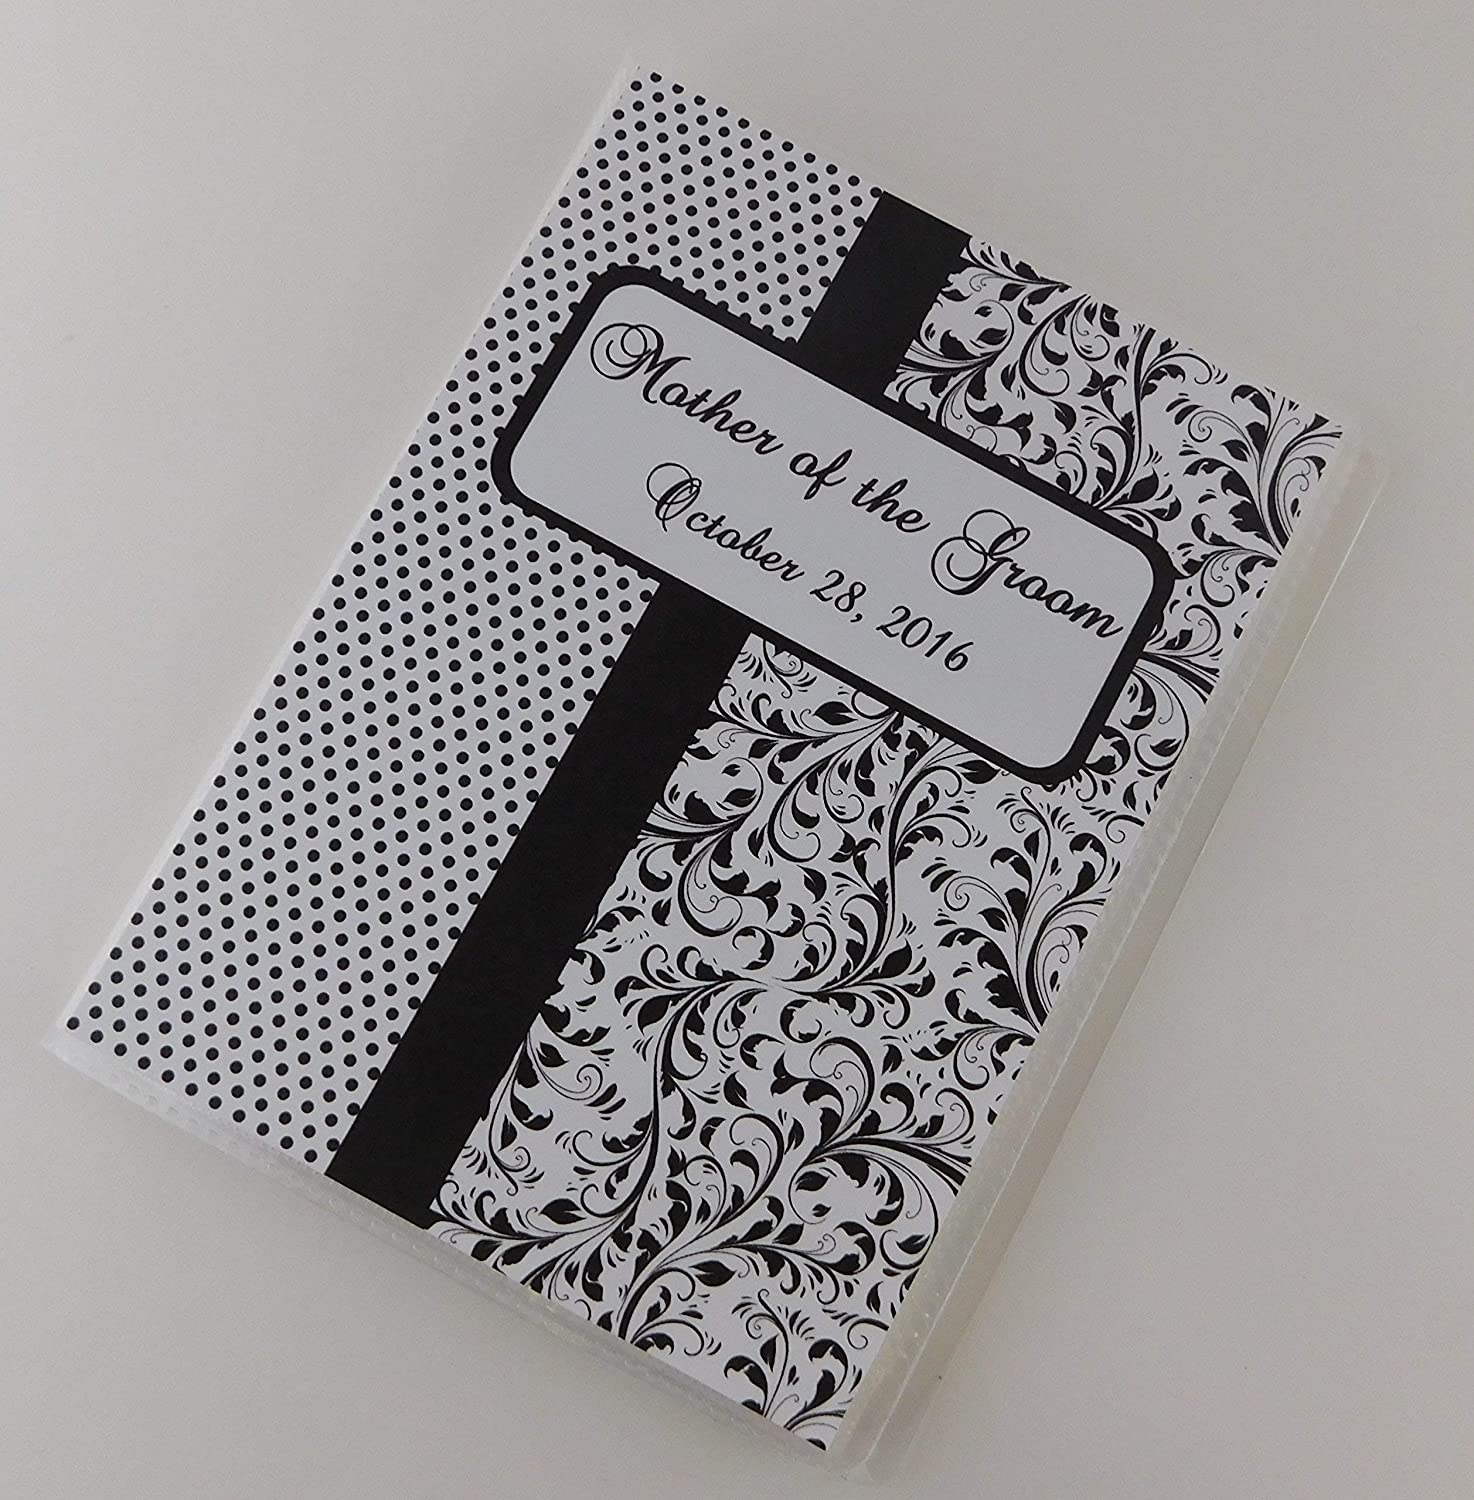 Bridal Shower Photo Album IA#896 Personalized Advice Cards Wedding Gift 4x6 or 5x7 Picture Black Stripe Watercolor Chic Floral Flowers Grandmas Brag Book